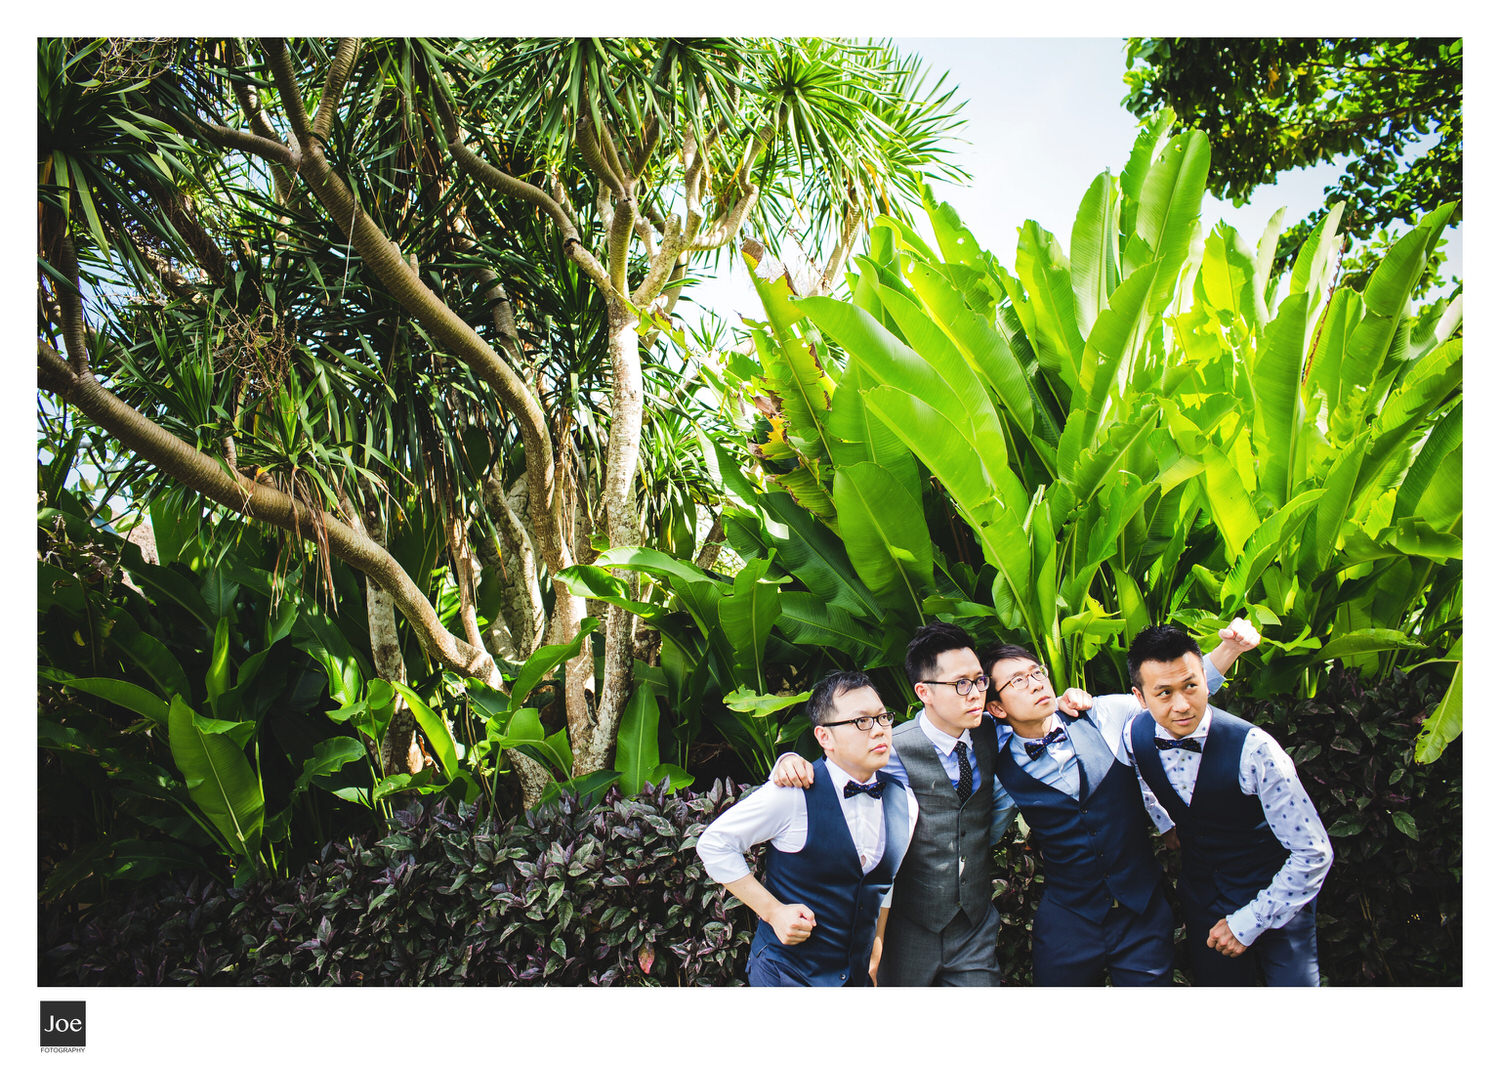 joe-fotography-bali-wedding-ayana-resort-janie-sean-32.jpg